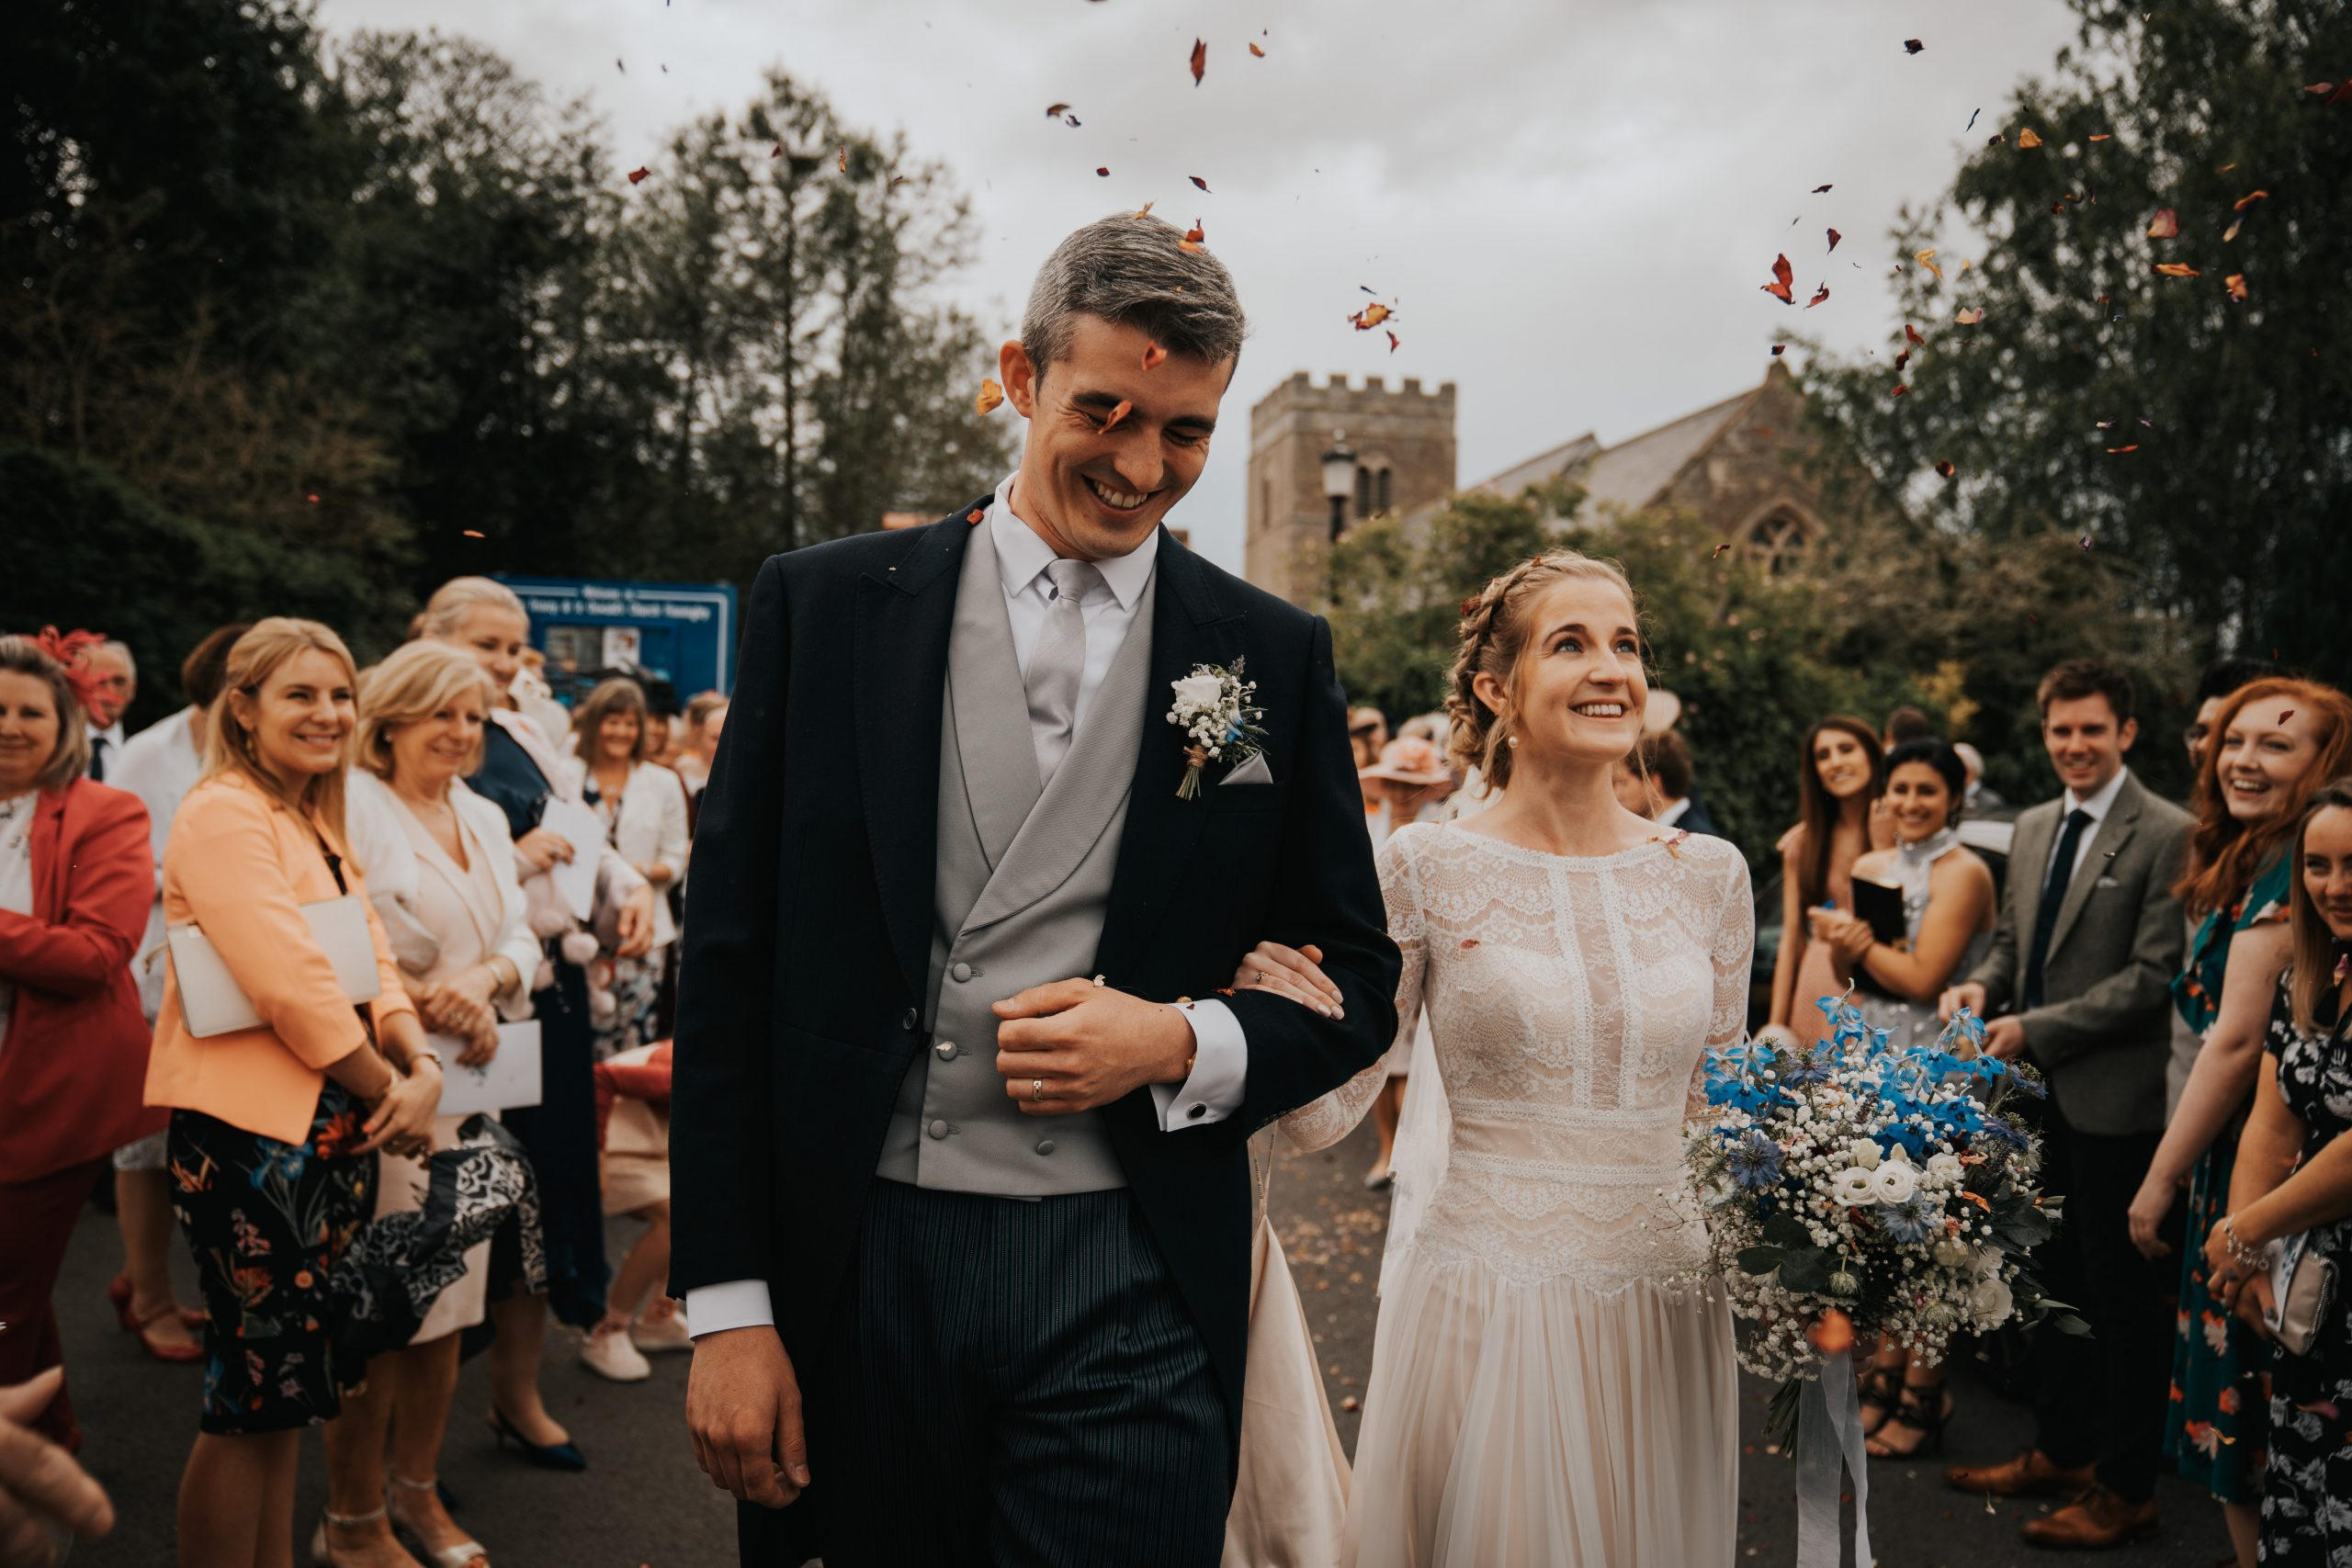 Bride and Groom Walking During Wedding Recessional While Guests Cheer